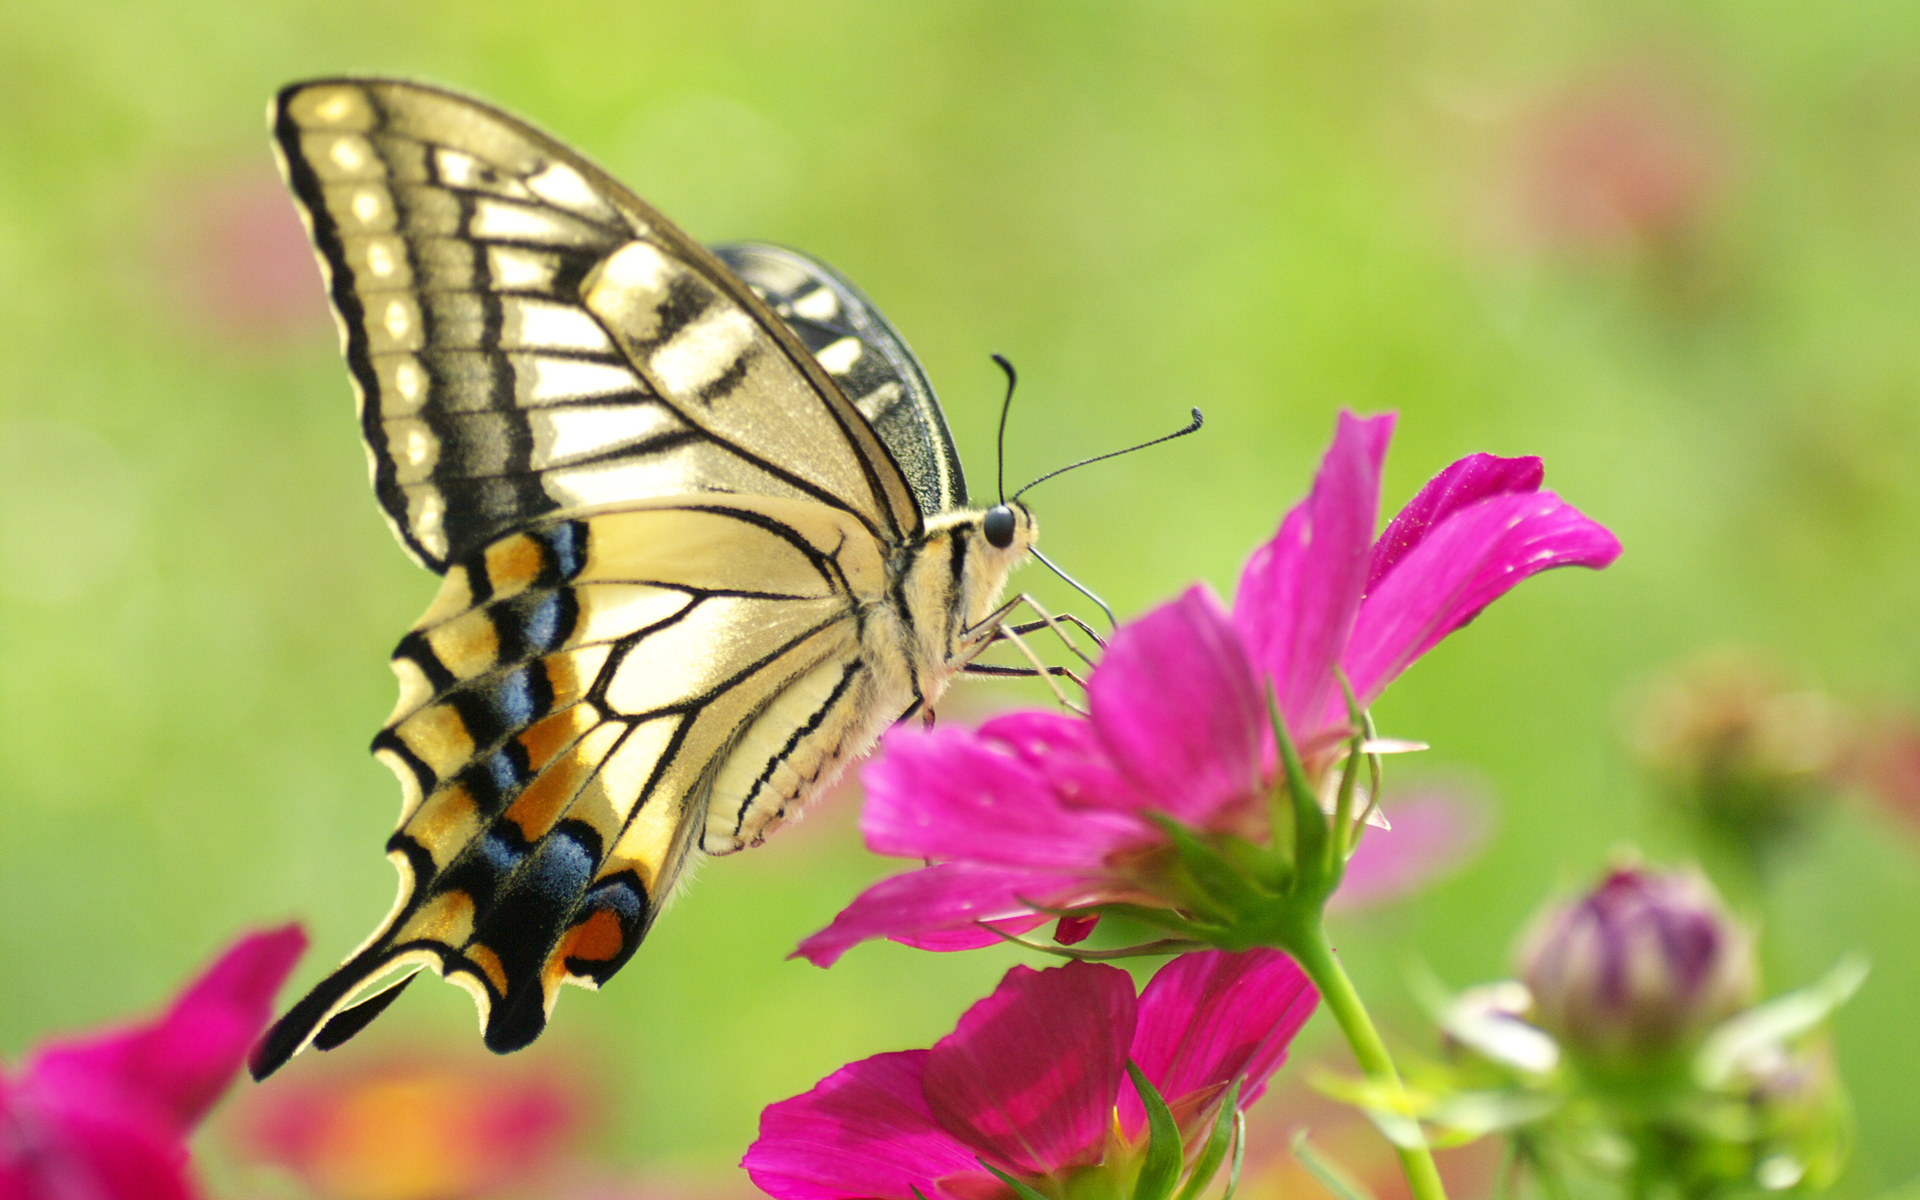 Flower Wallpapers Hd Butterfly And Flower Wallpaper